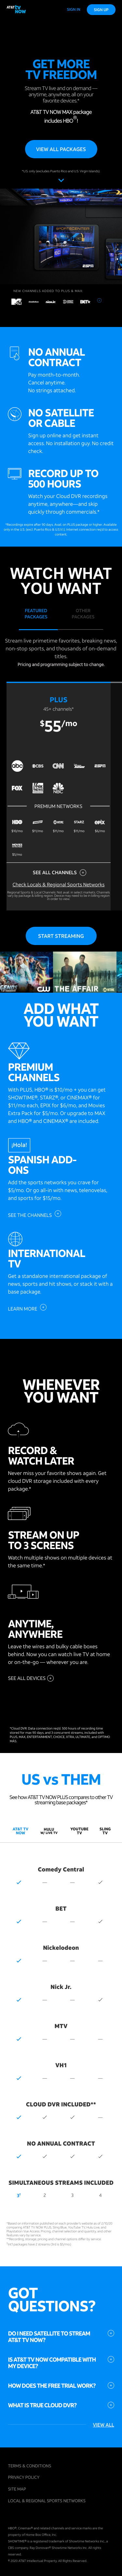 AT&T TV Now Coupon